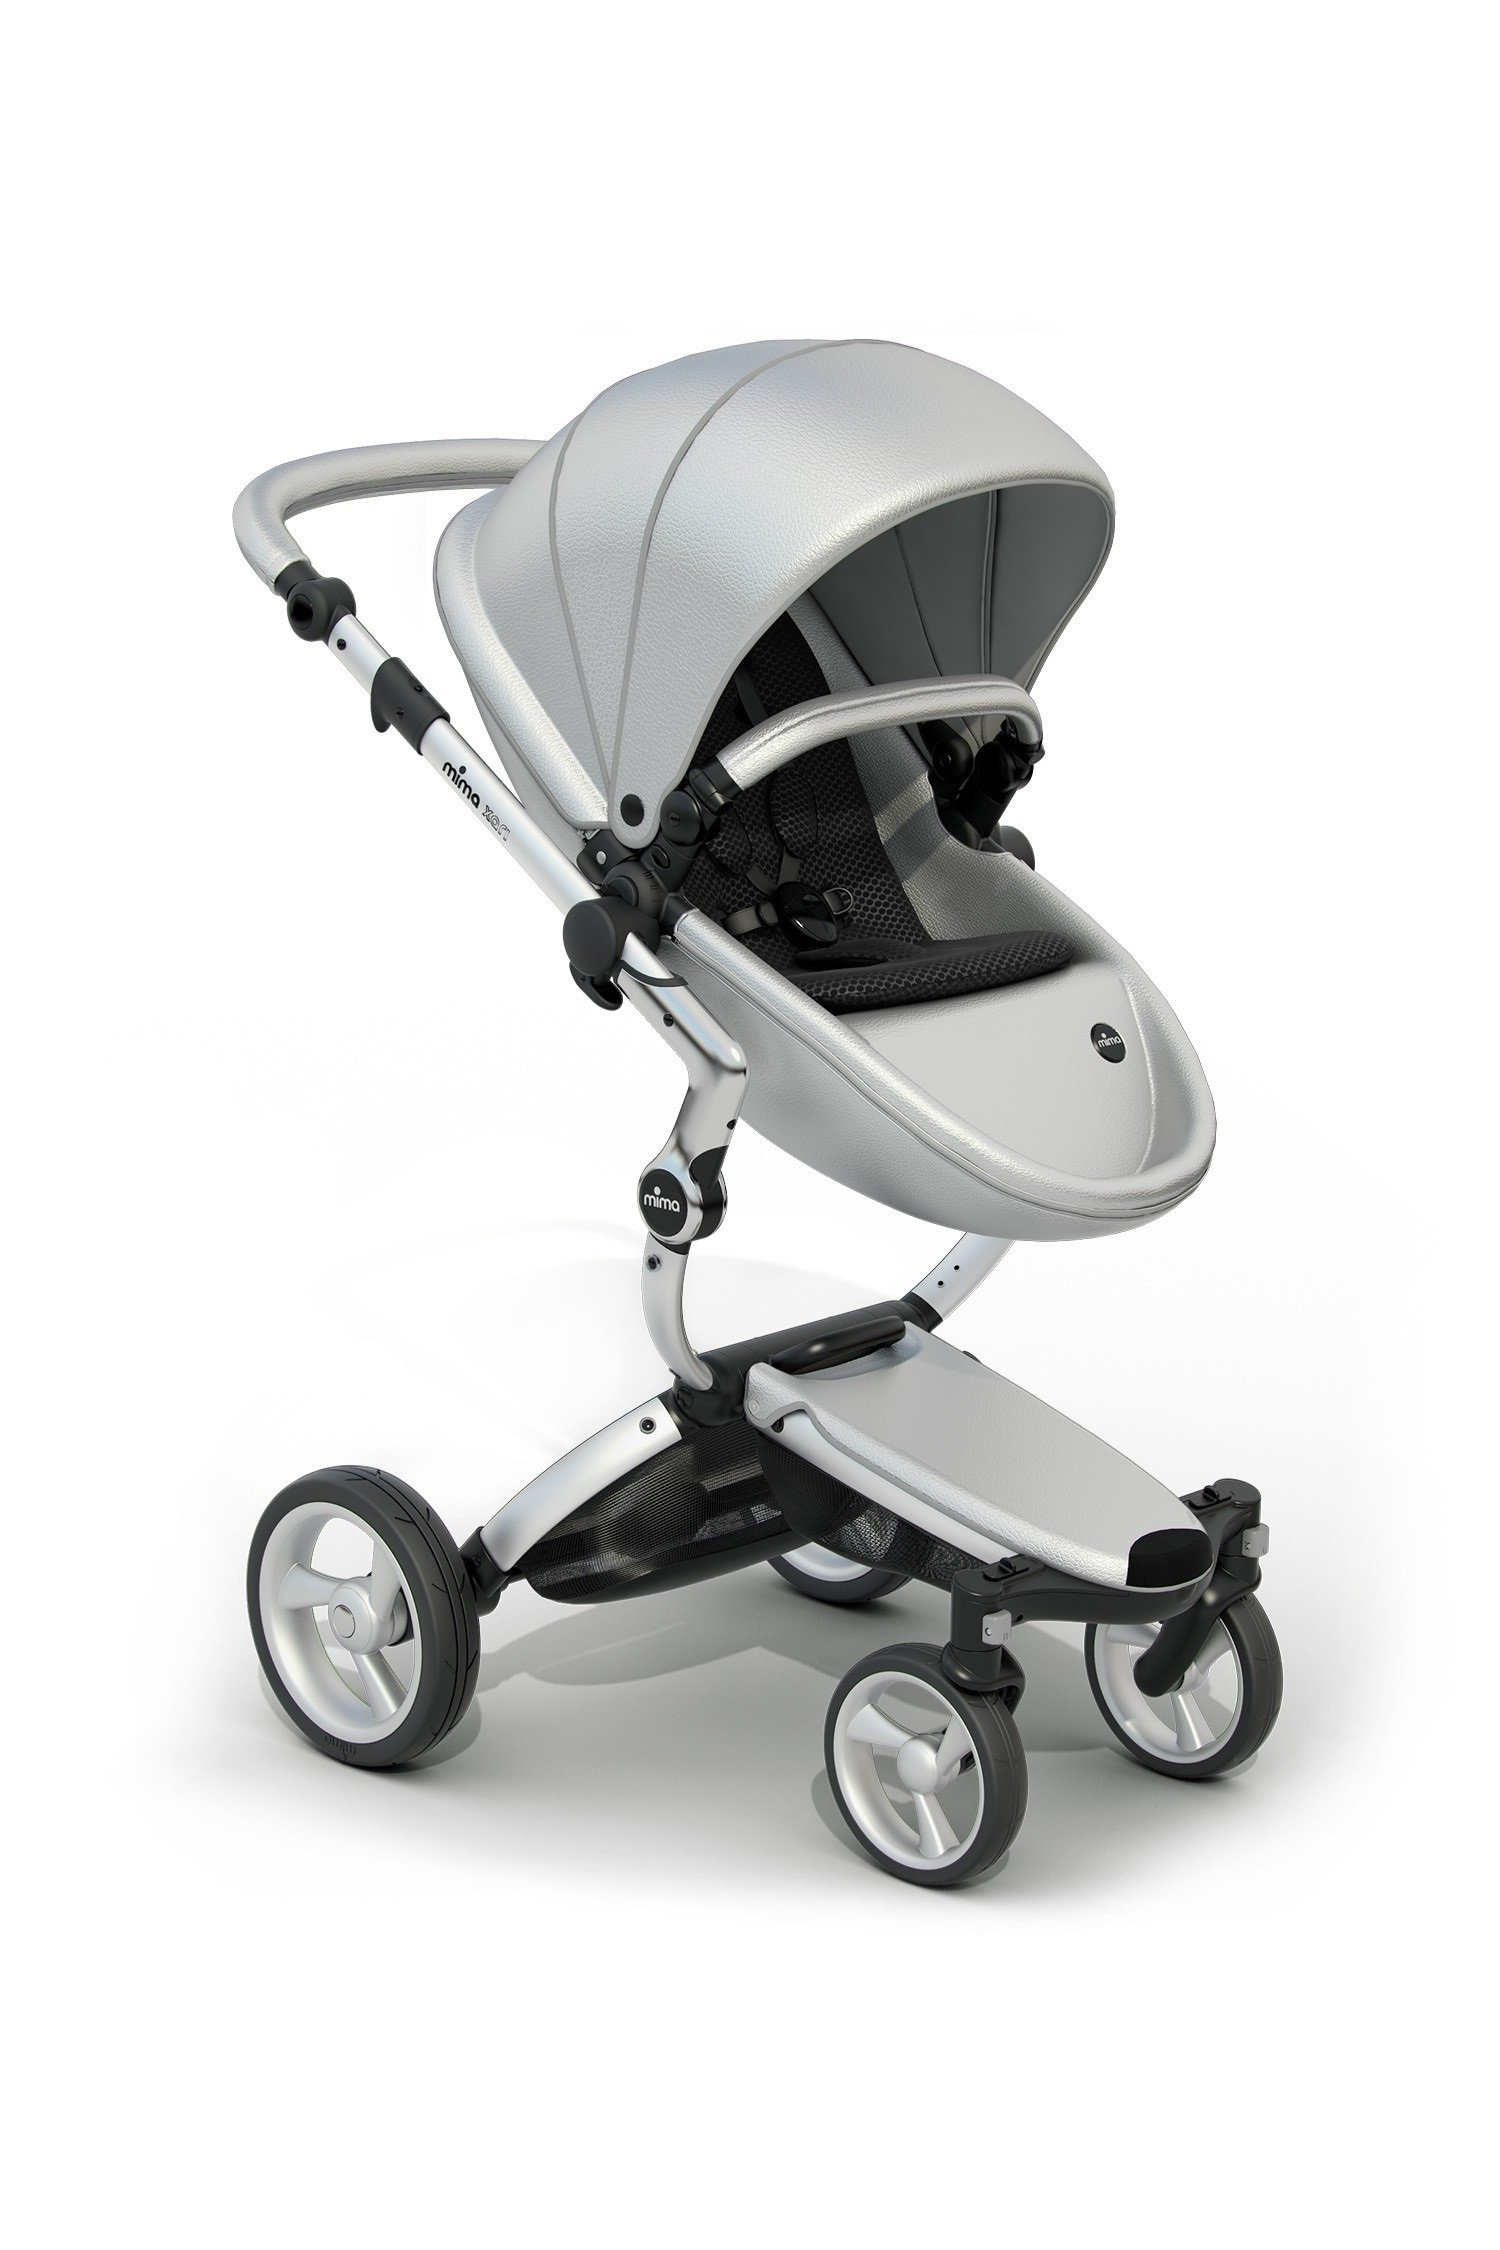 Mima Xari Stroller Authorized Seller ( Aluminum Chassis, Argento seat, Black Starter Pack by Mima (Image #1)